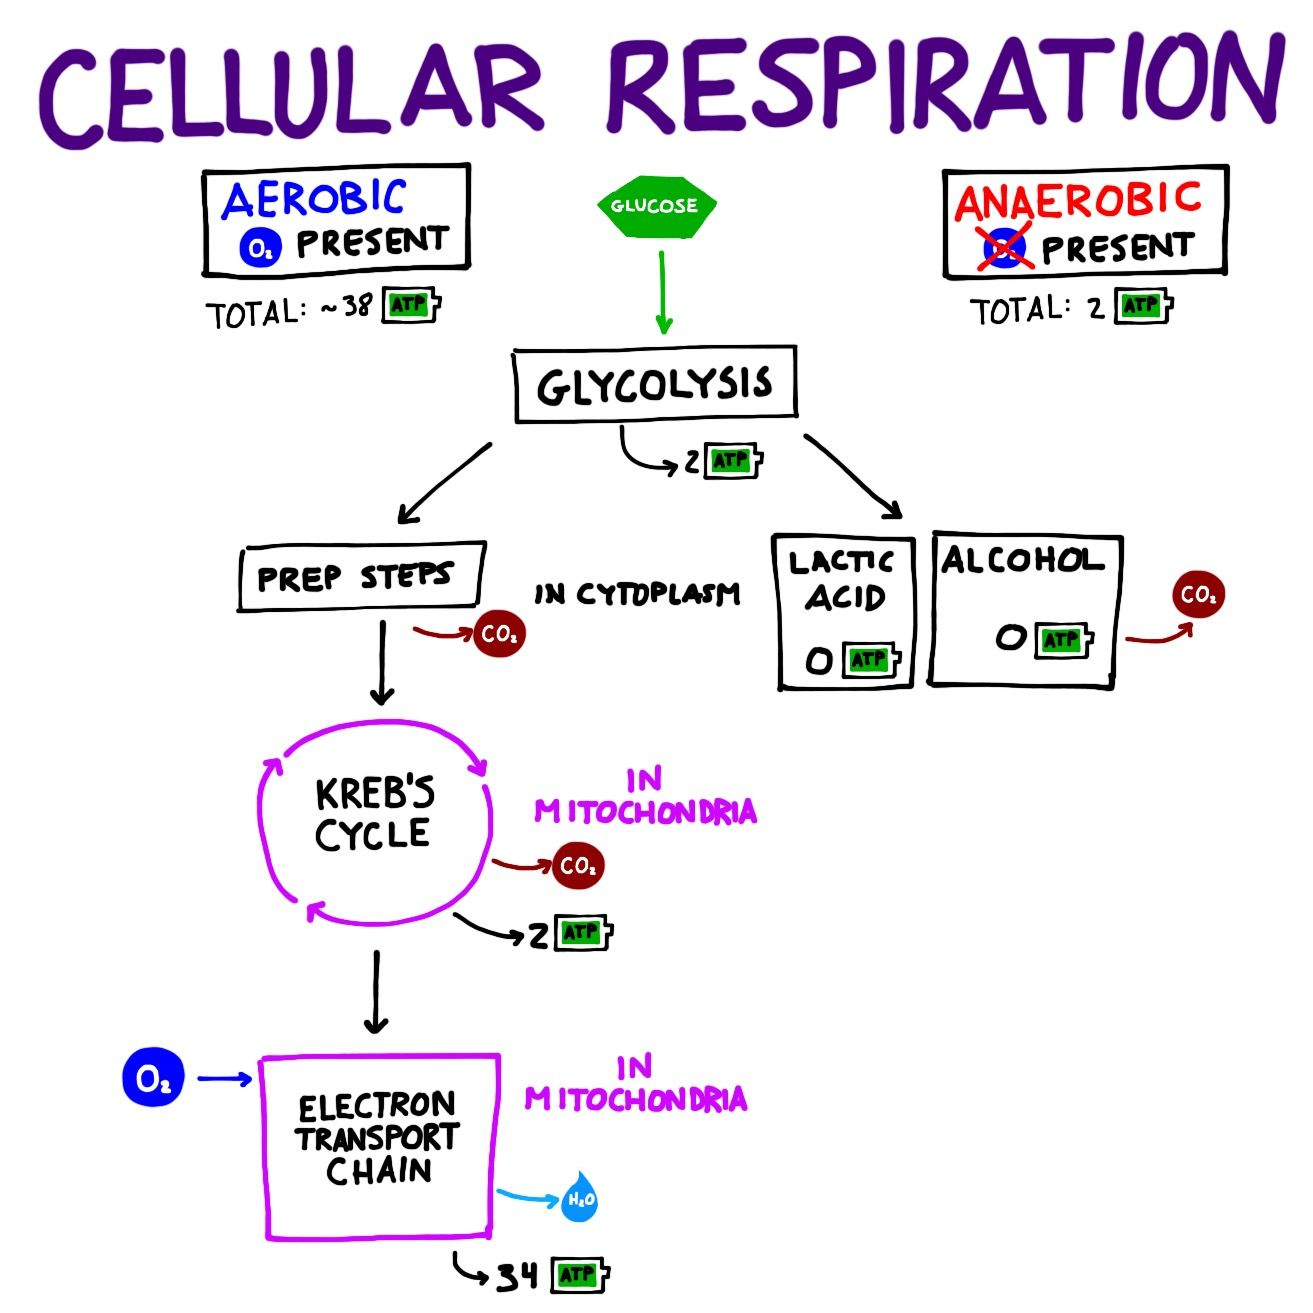 Glycolysis And Krebs Cycle Diagram Class For Voting System Overview Of The Major Steps Cellular Respiration